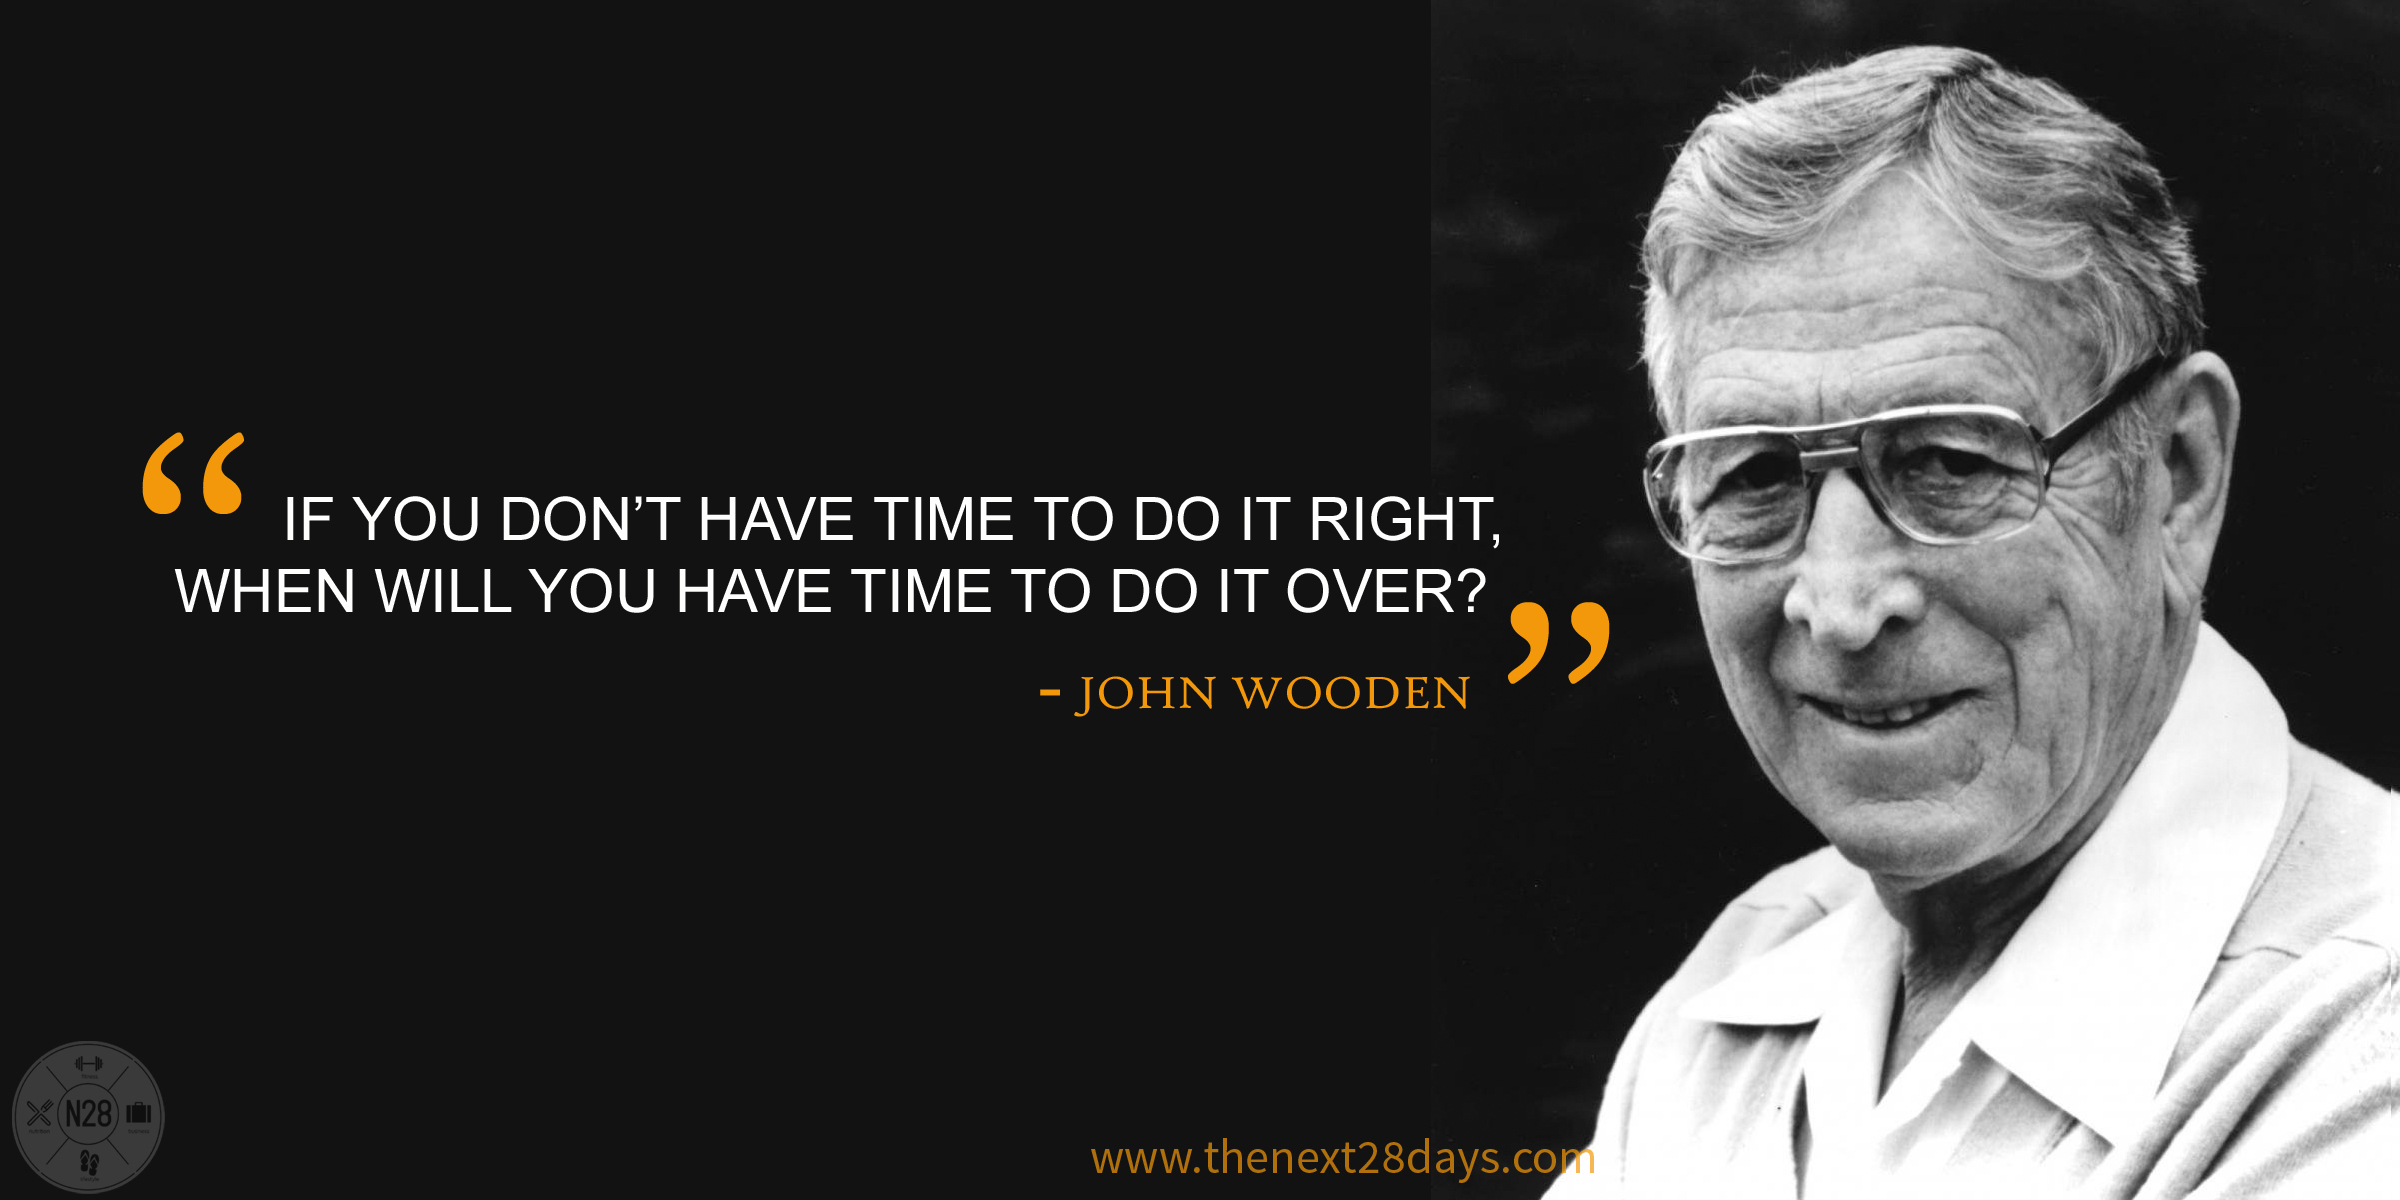 Next28 John Wooden Quote | Flickr - Photo Sharing!